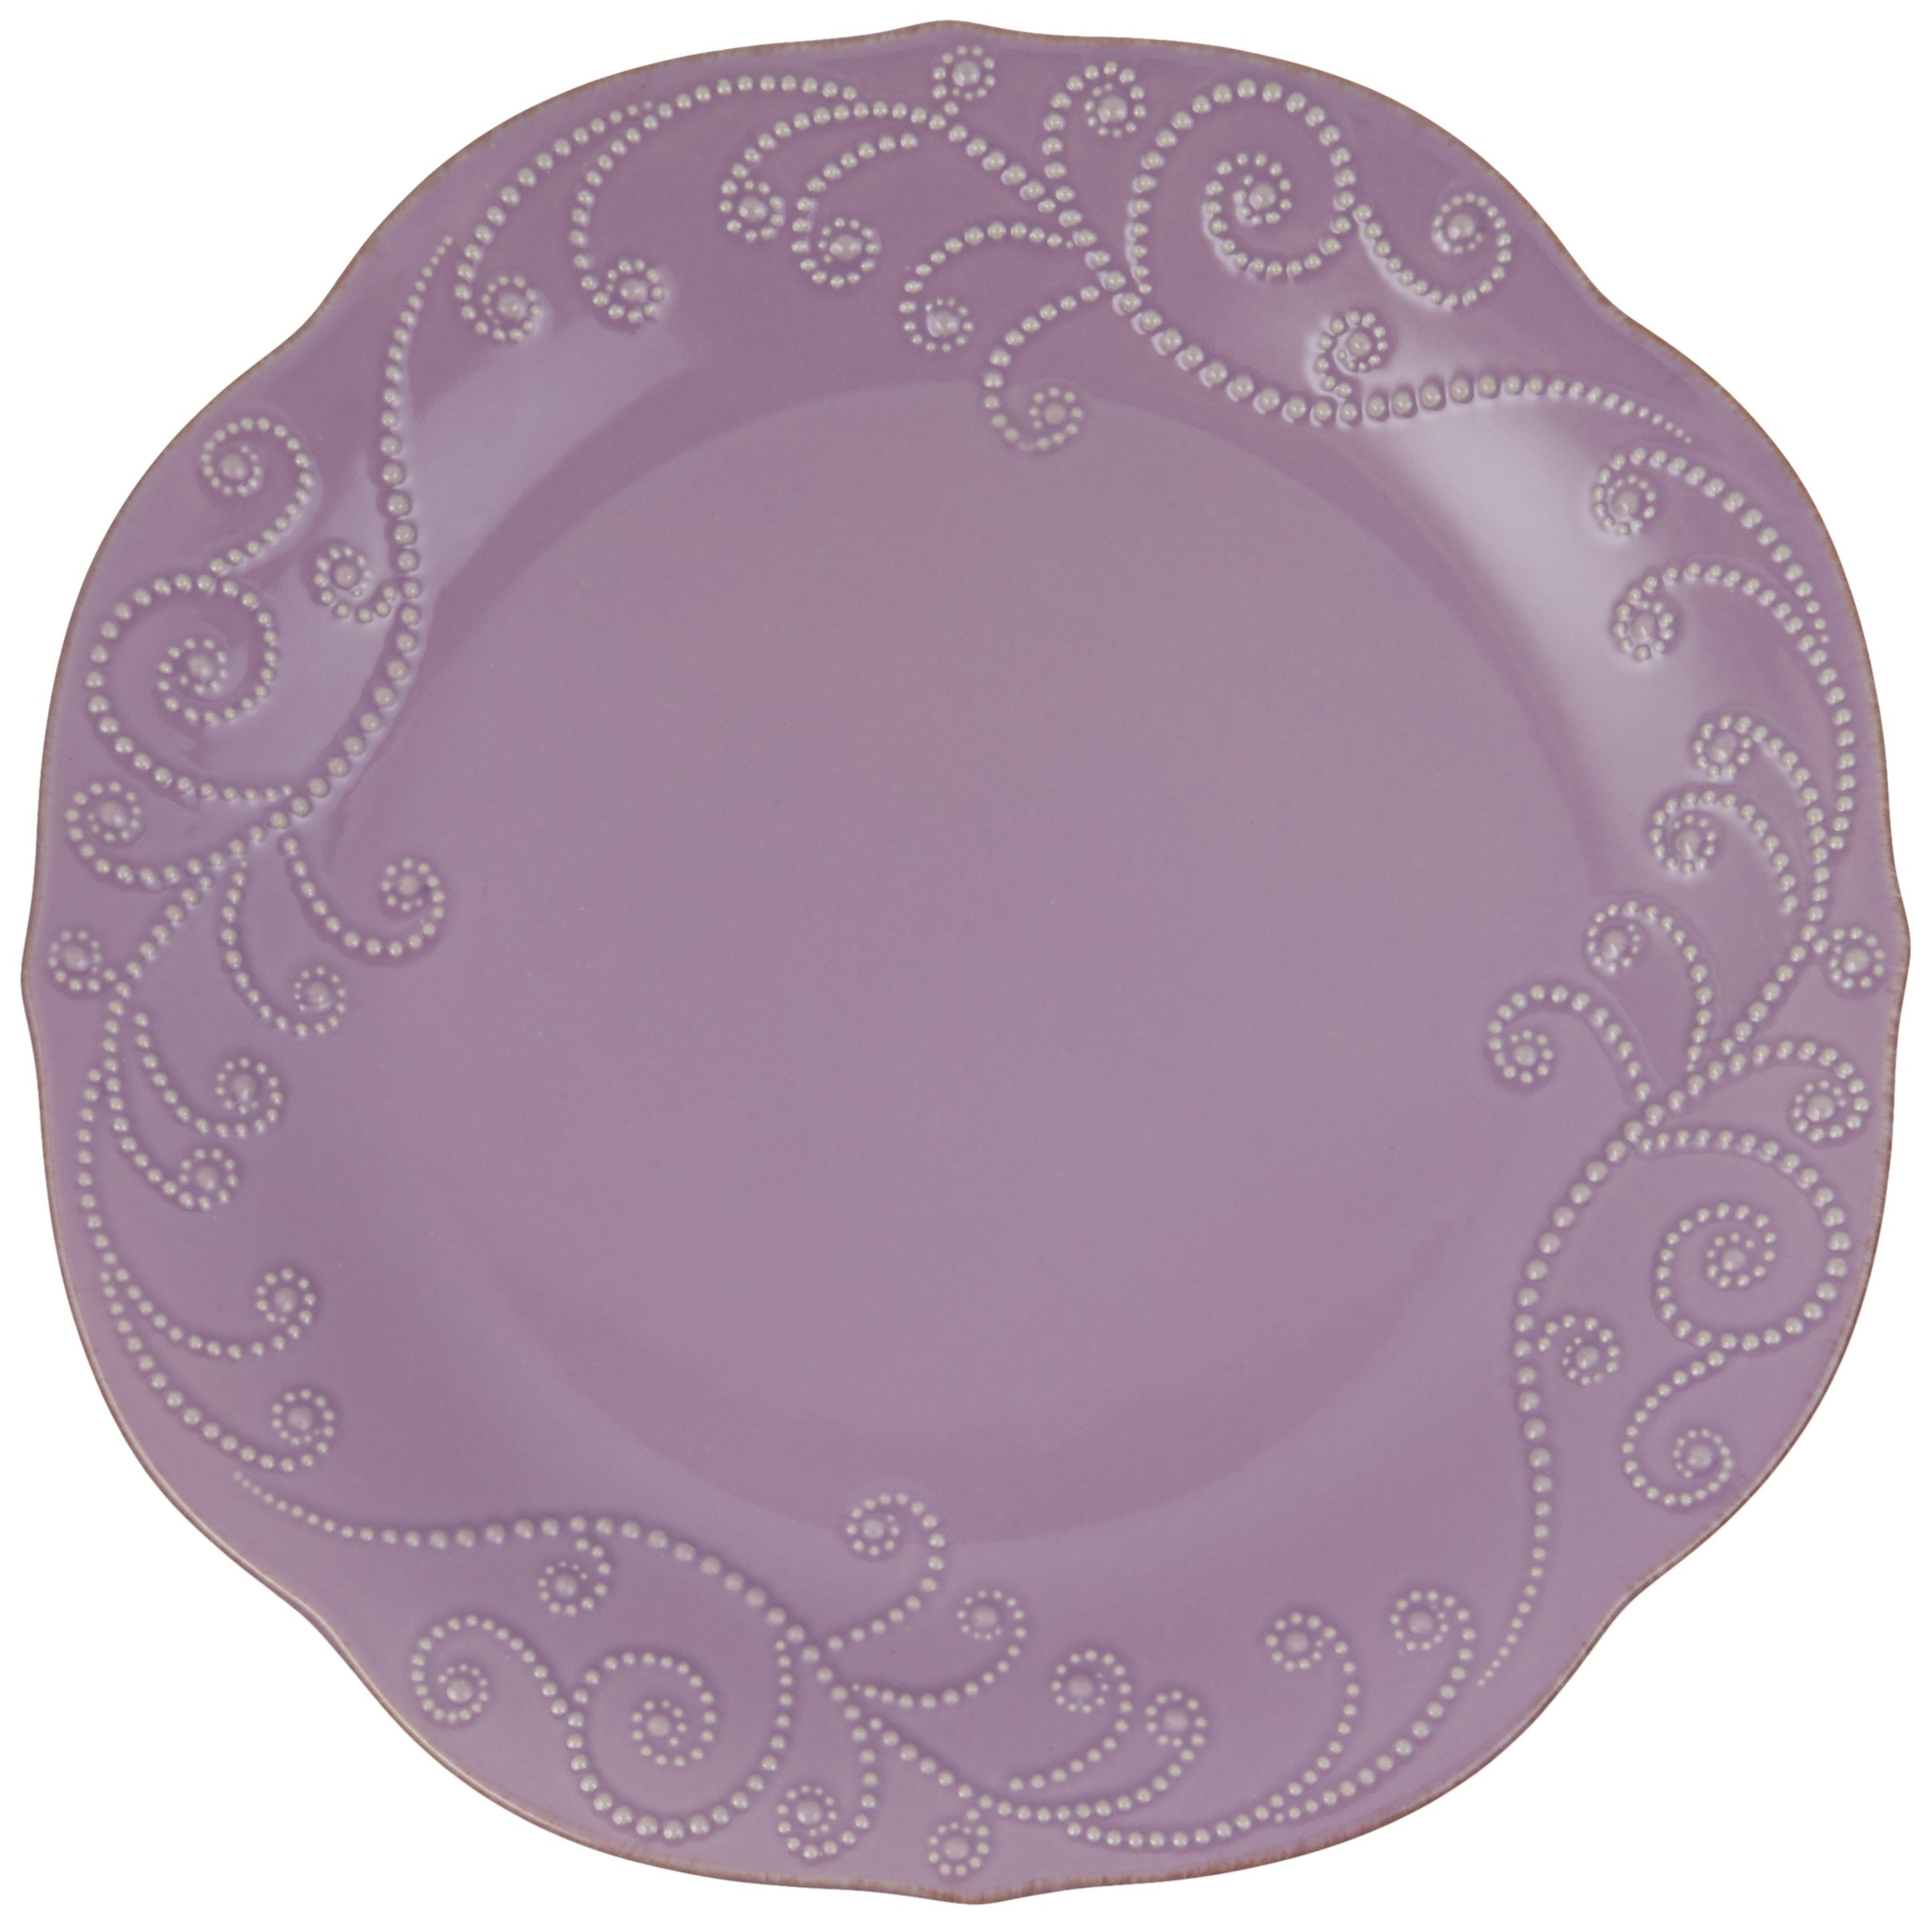 Lenox 843827 FRENCH PERLE VIOLET DW DINNER PLATE - Pack of 4 by Lenox (Image #2)